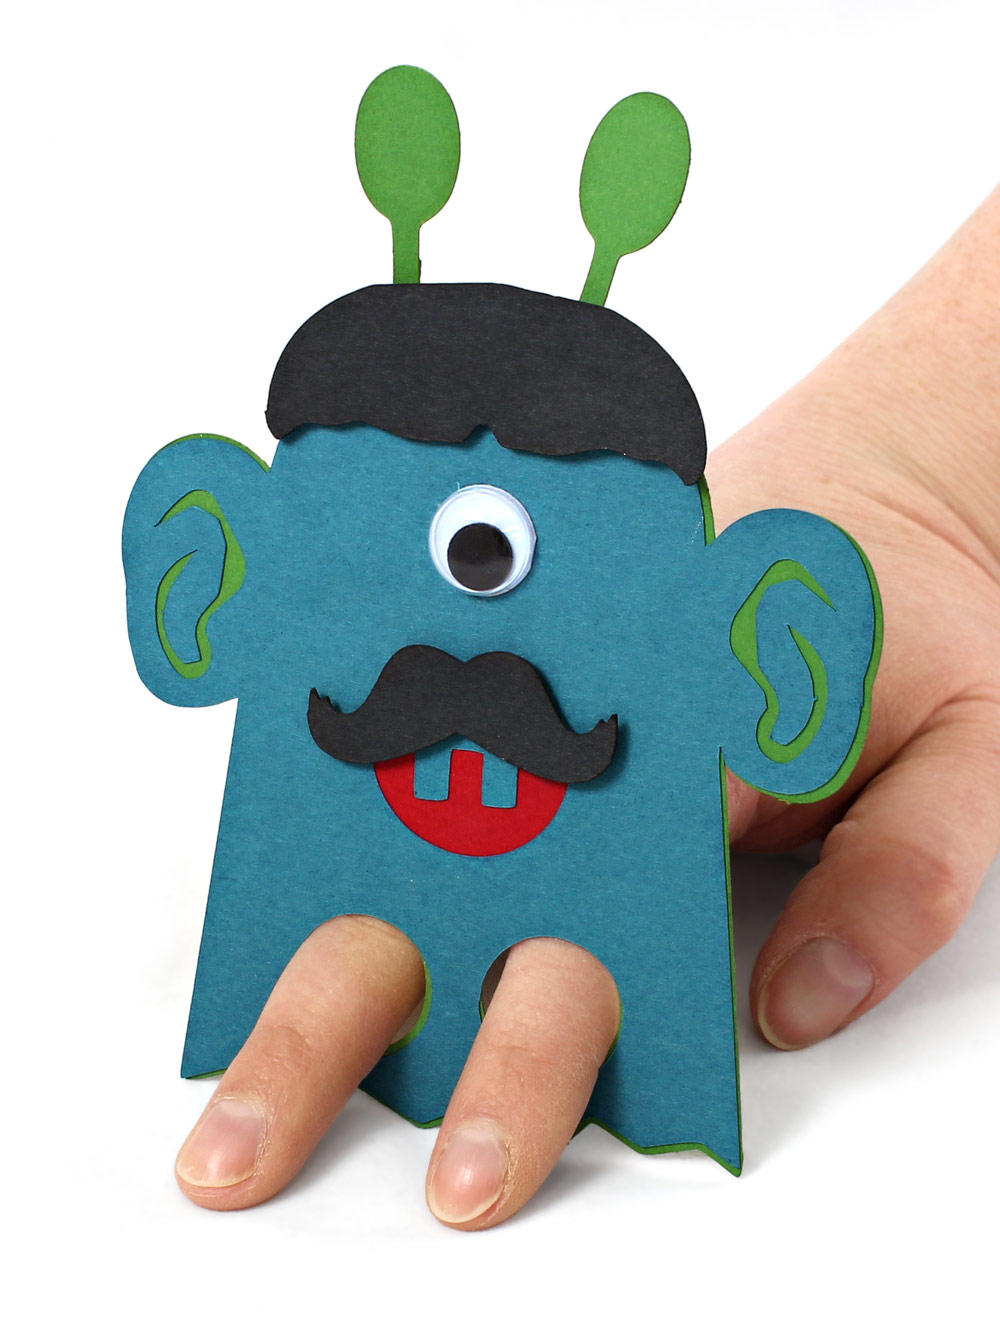 DIY Classroom Valentines Scary Monster Finger Puppet with Hand